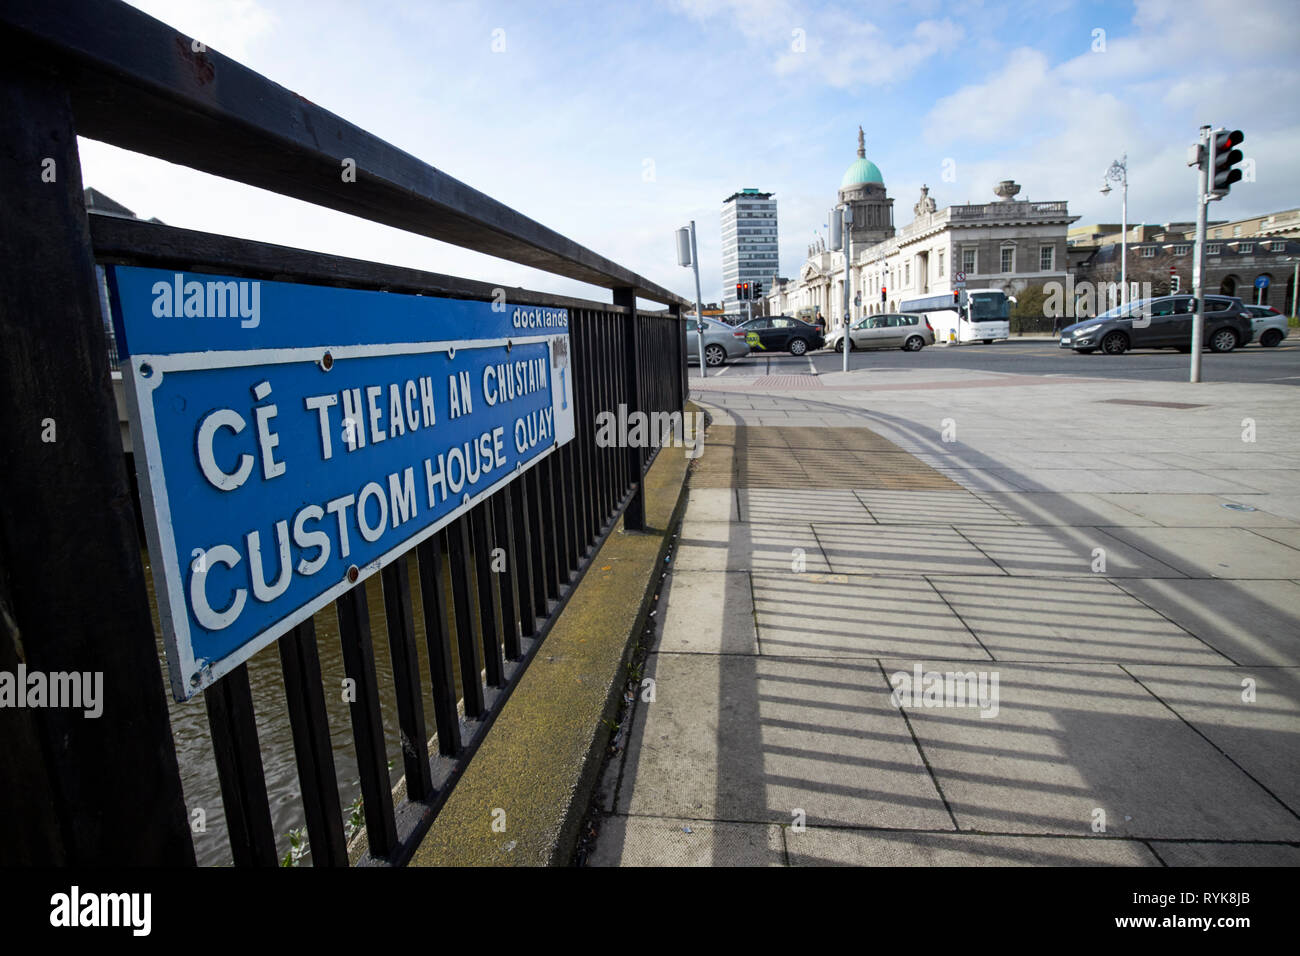 custom house quay with a view of the custom house docklands Dublin republic of Ireland - Stock Image